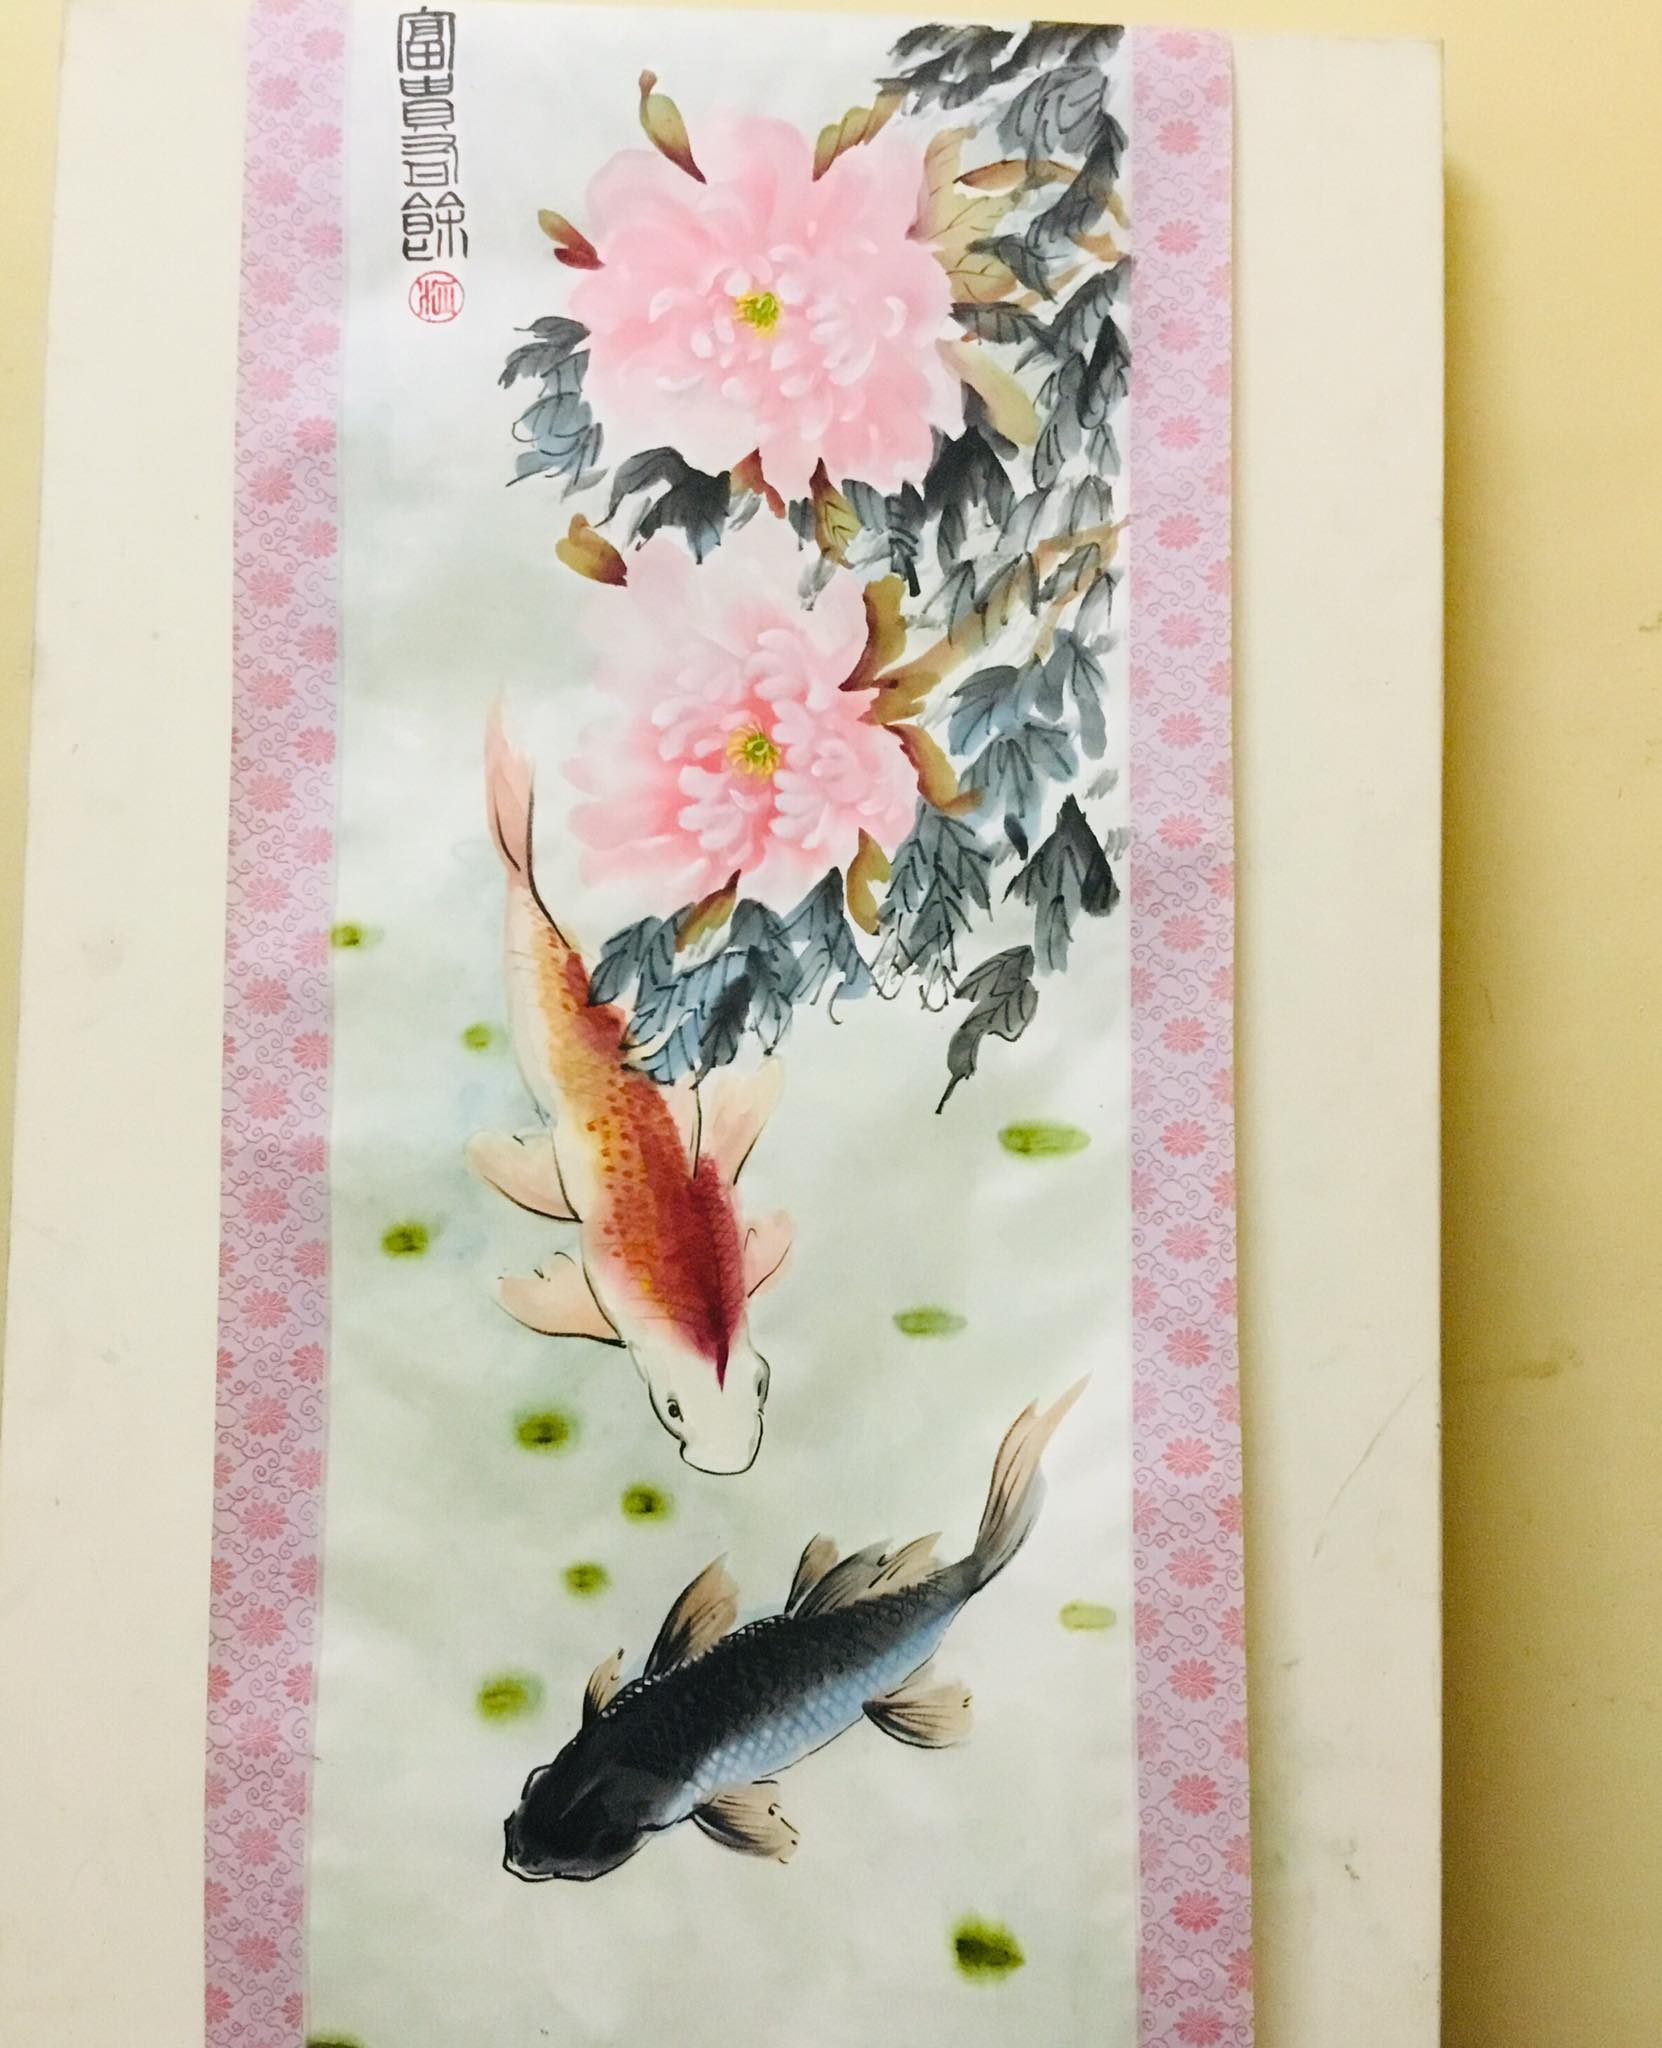 Chinese Traditional Waterfall Landscape Scrolled Painting